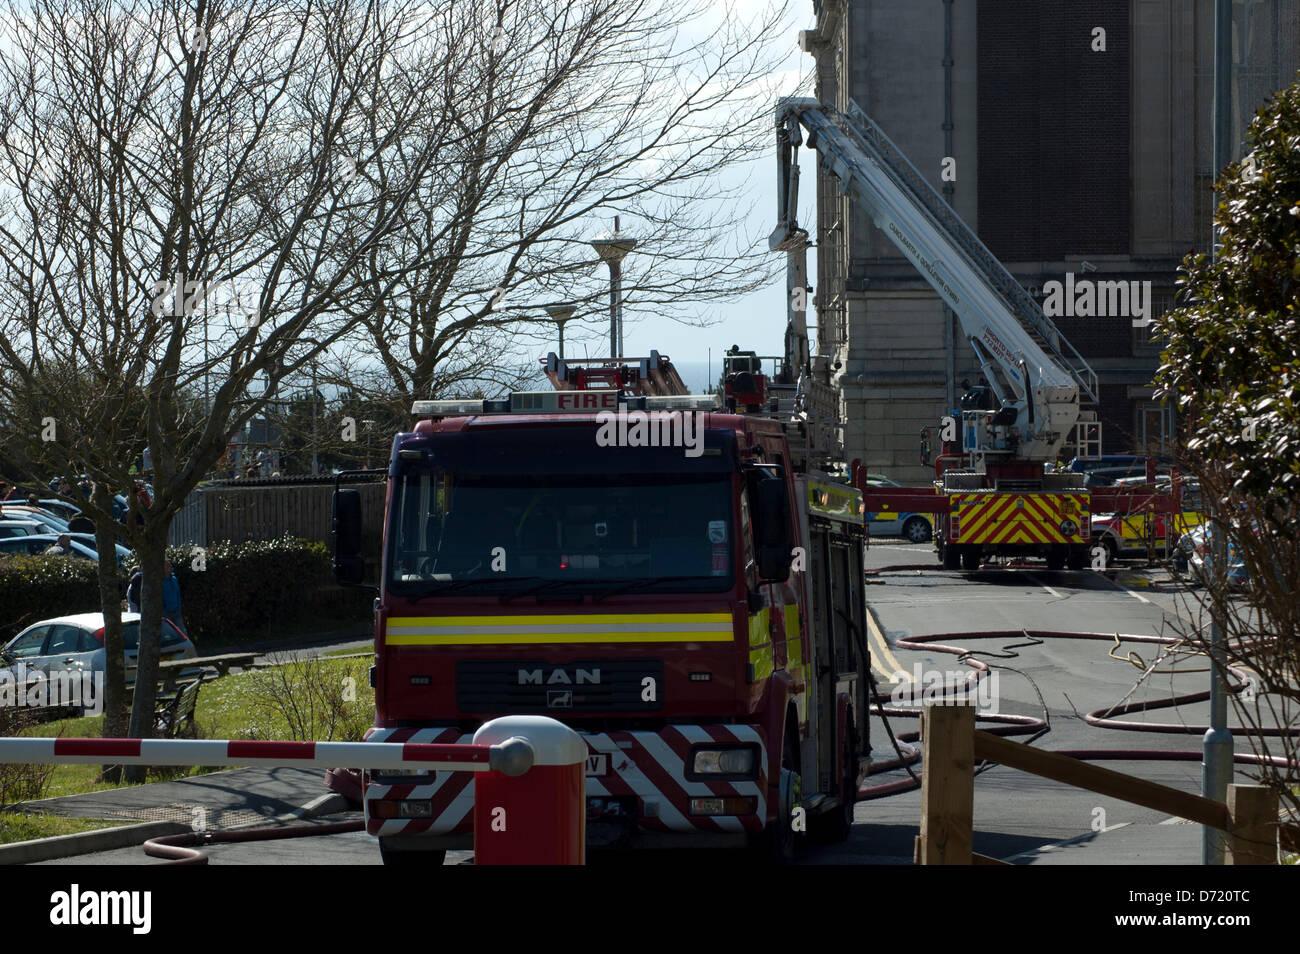 Aberystwyth, Wales, UK. 26th April 2013. Fire crews in attendance to a fire at the rear of the National Library - Stock Image